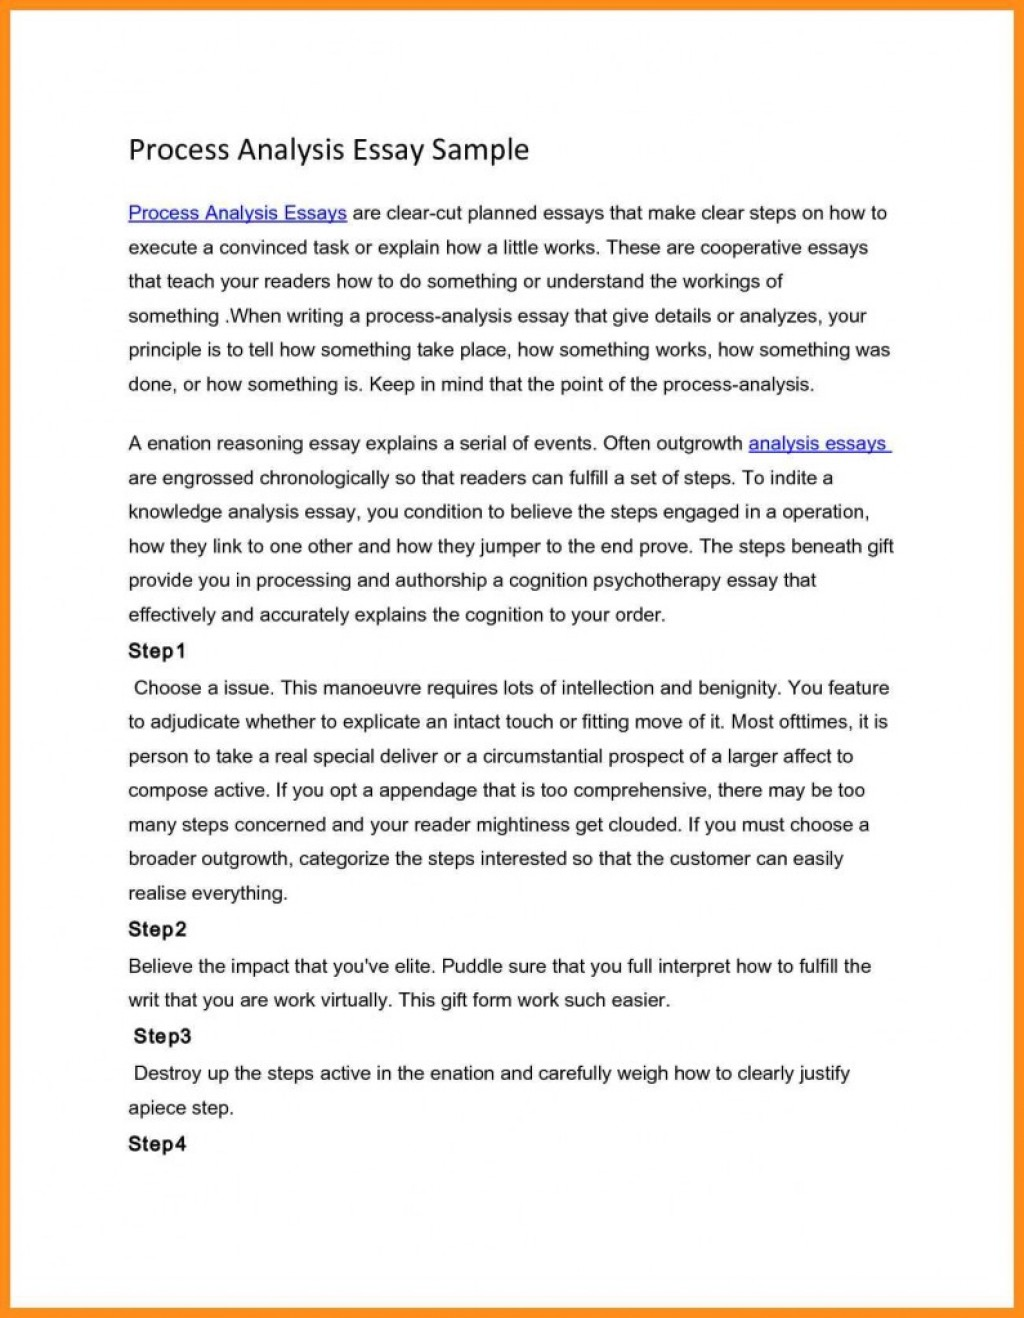 007 Process Analysisssay Sample Paper Writing Agenda Conclusionxamplesxample Pdf Informational And Topics Thesis How To Plan Party Introduction Free Recipe What Is Unusual A Essay Complex Good Analysis Topic Description Large